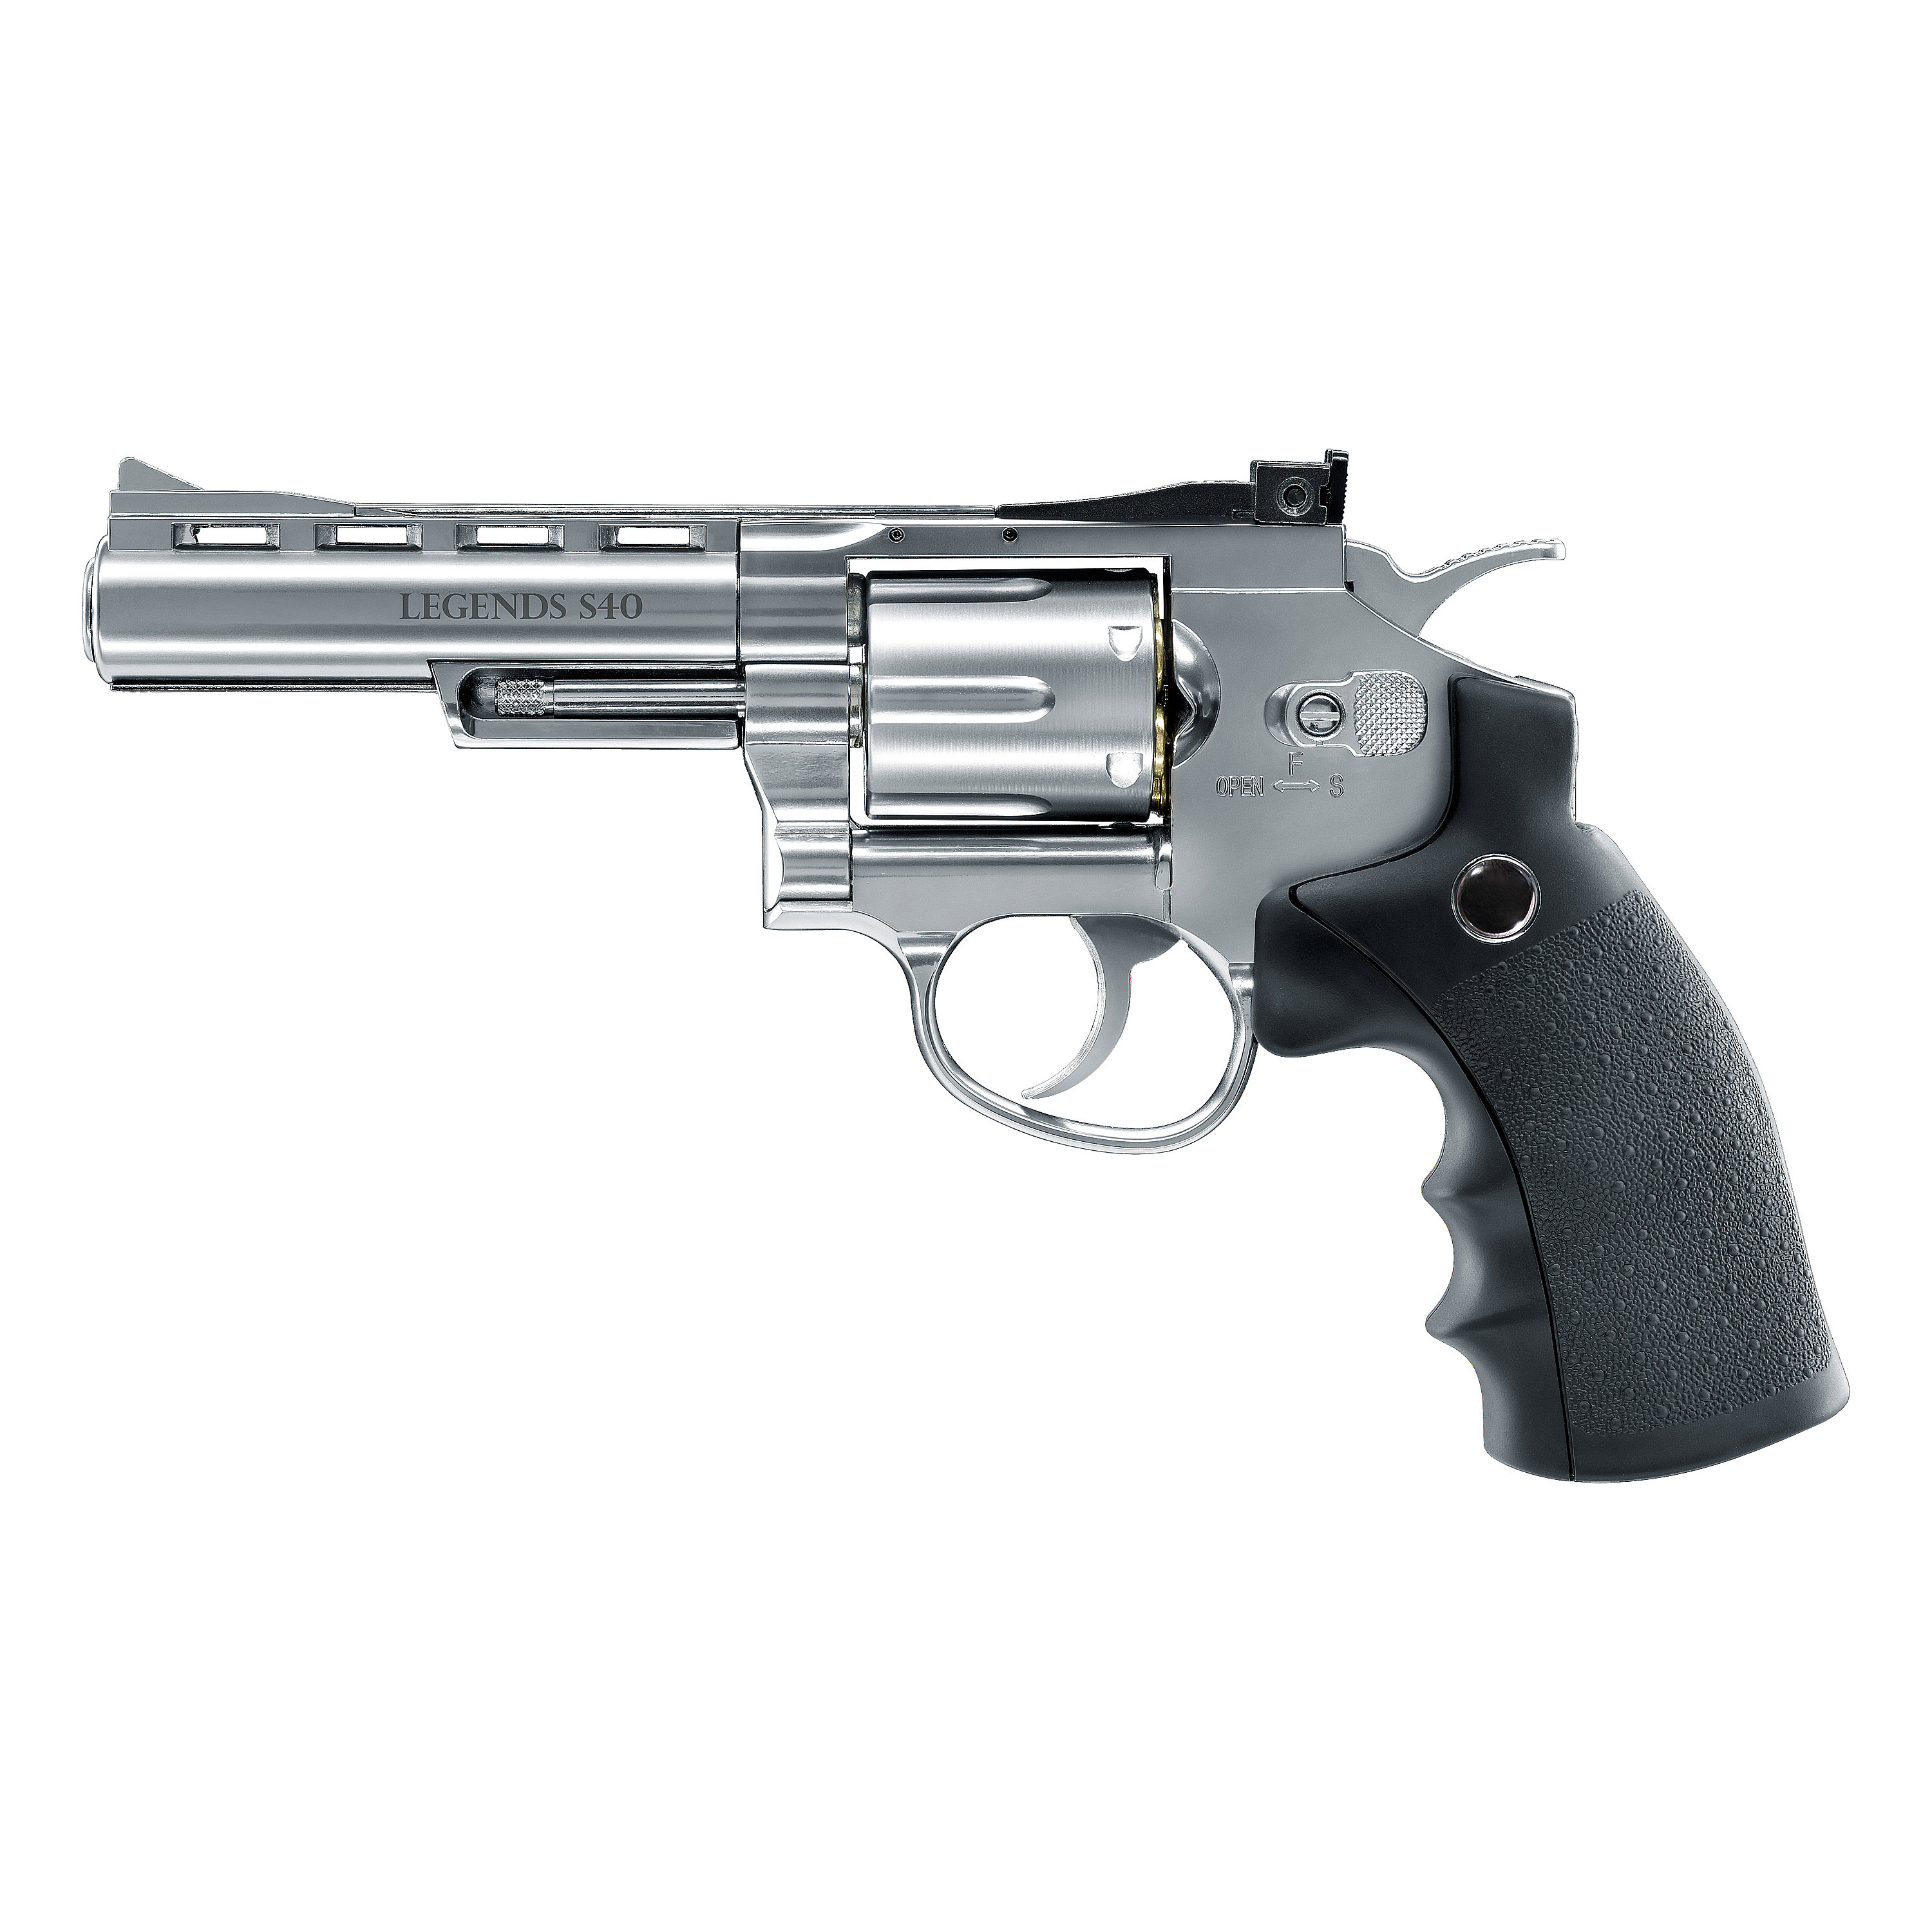 Legends Co2 Revolver S40 4.5 mm